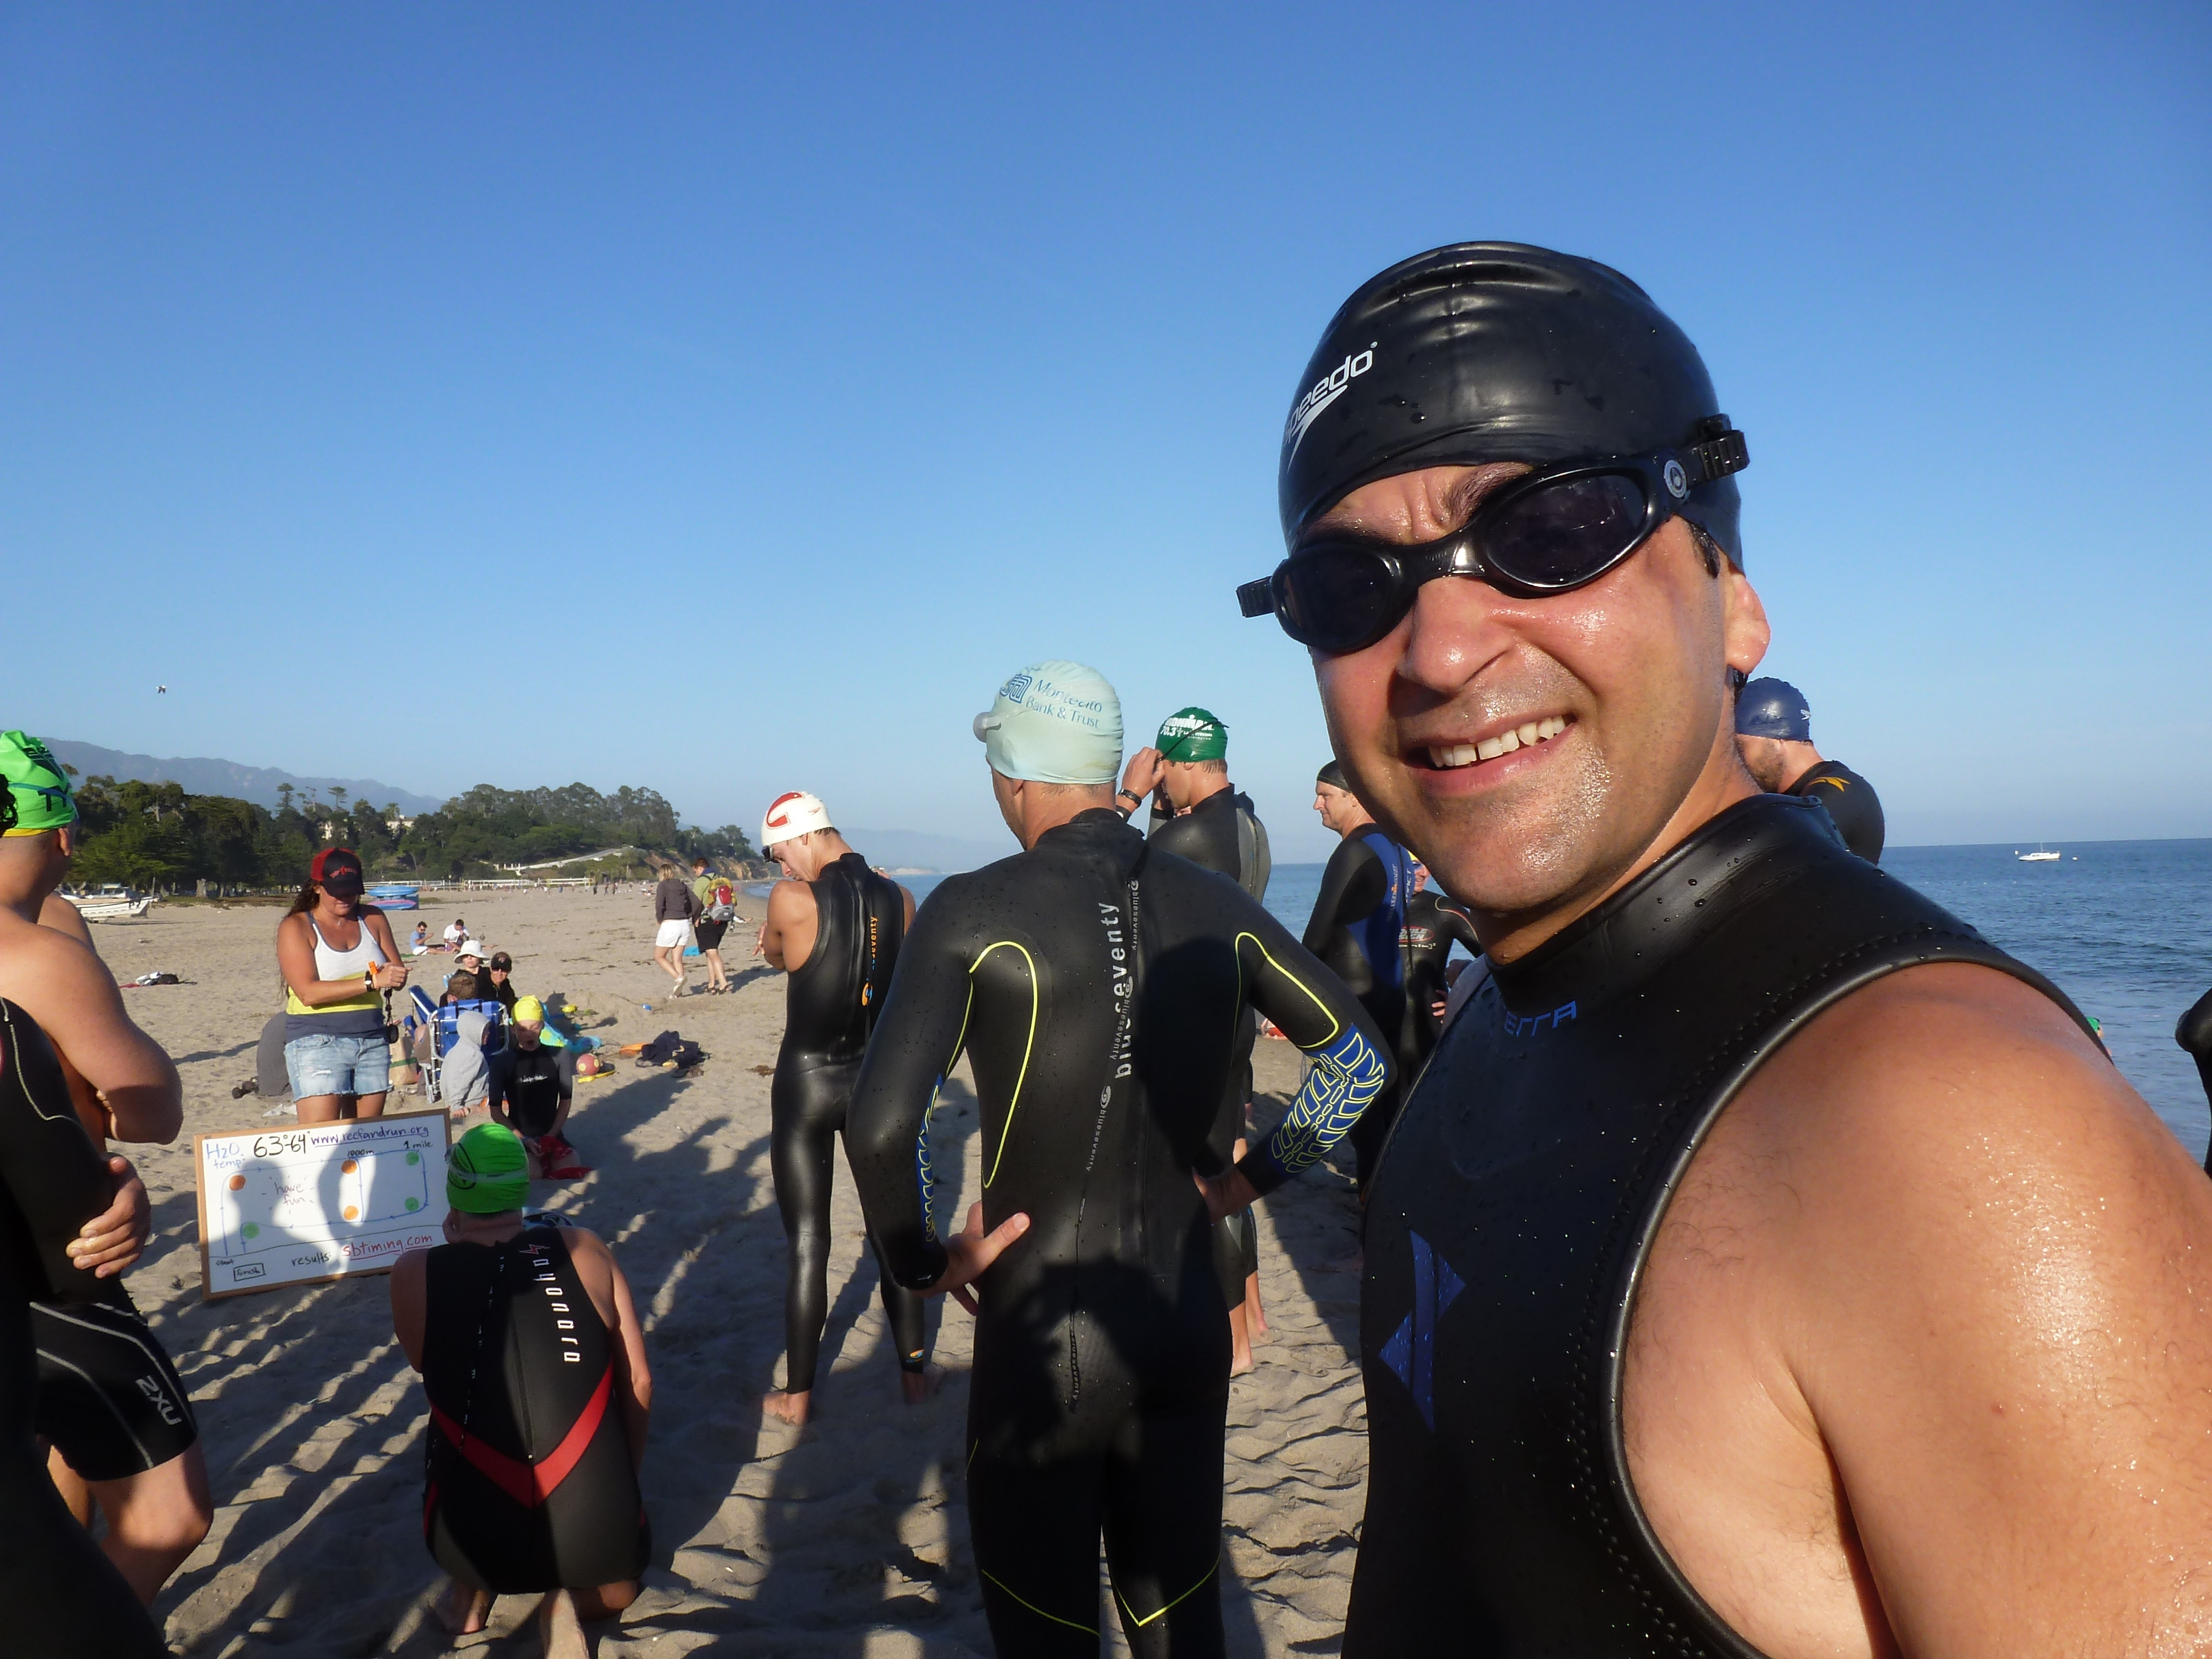 romo reefrun Prelude to the SB Triathlon: New jock Romo ready to give it a 'Tri'